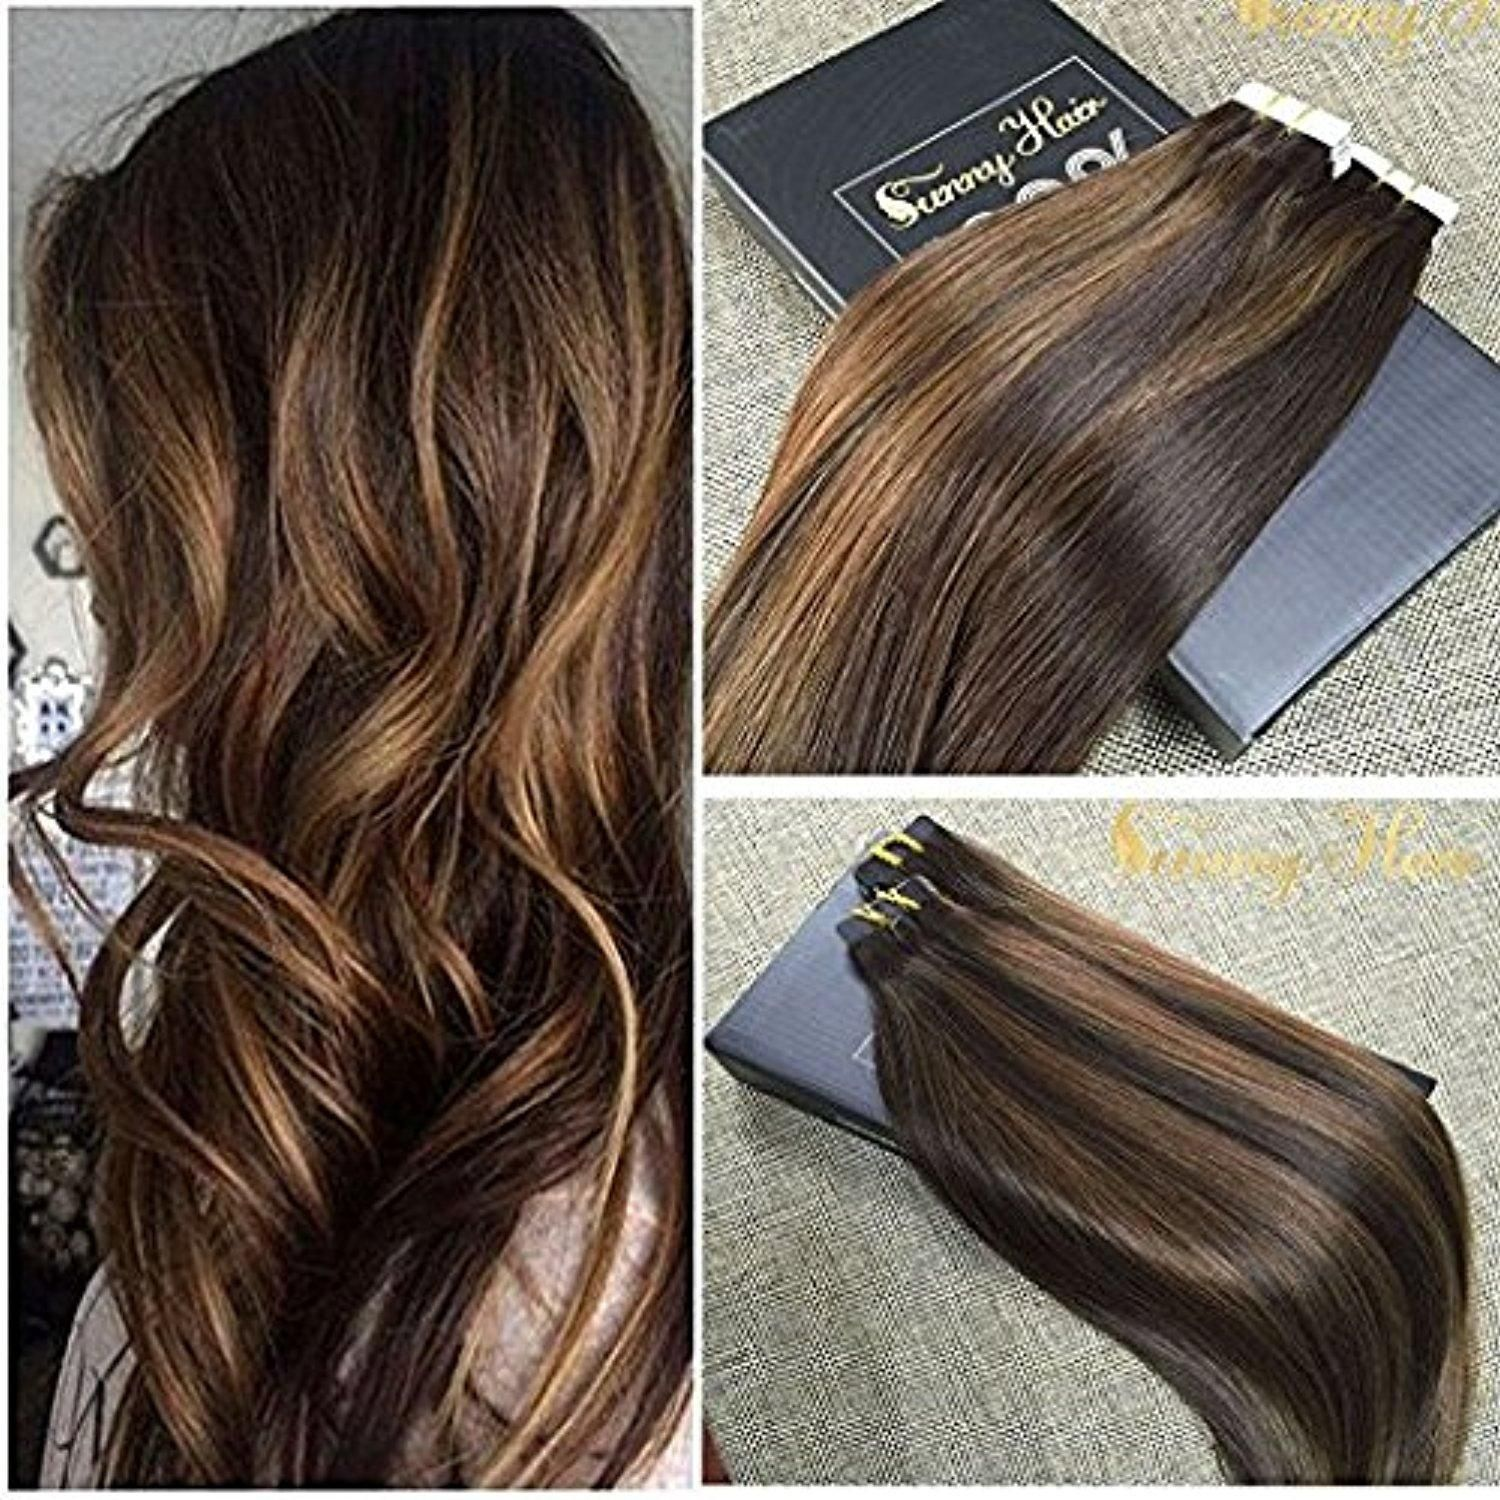 Sunny 18inch 20pcs 50g two tone color 2 fading to dark brown mixed sunny two tone color fading to dark brown mixed honey blonde colorful highlight balayage seamless tape in human hair extensions pmusecretfo Image collections